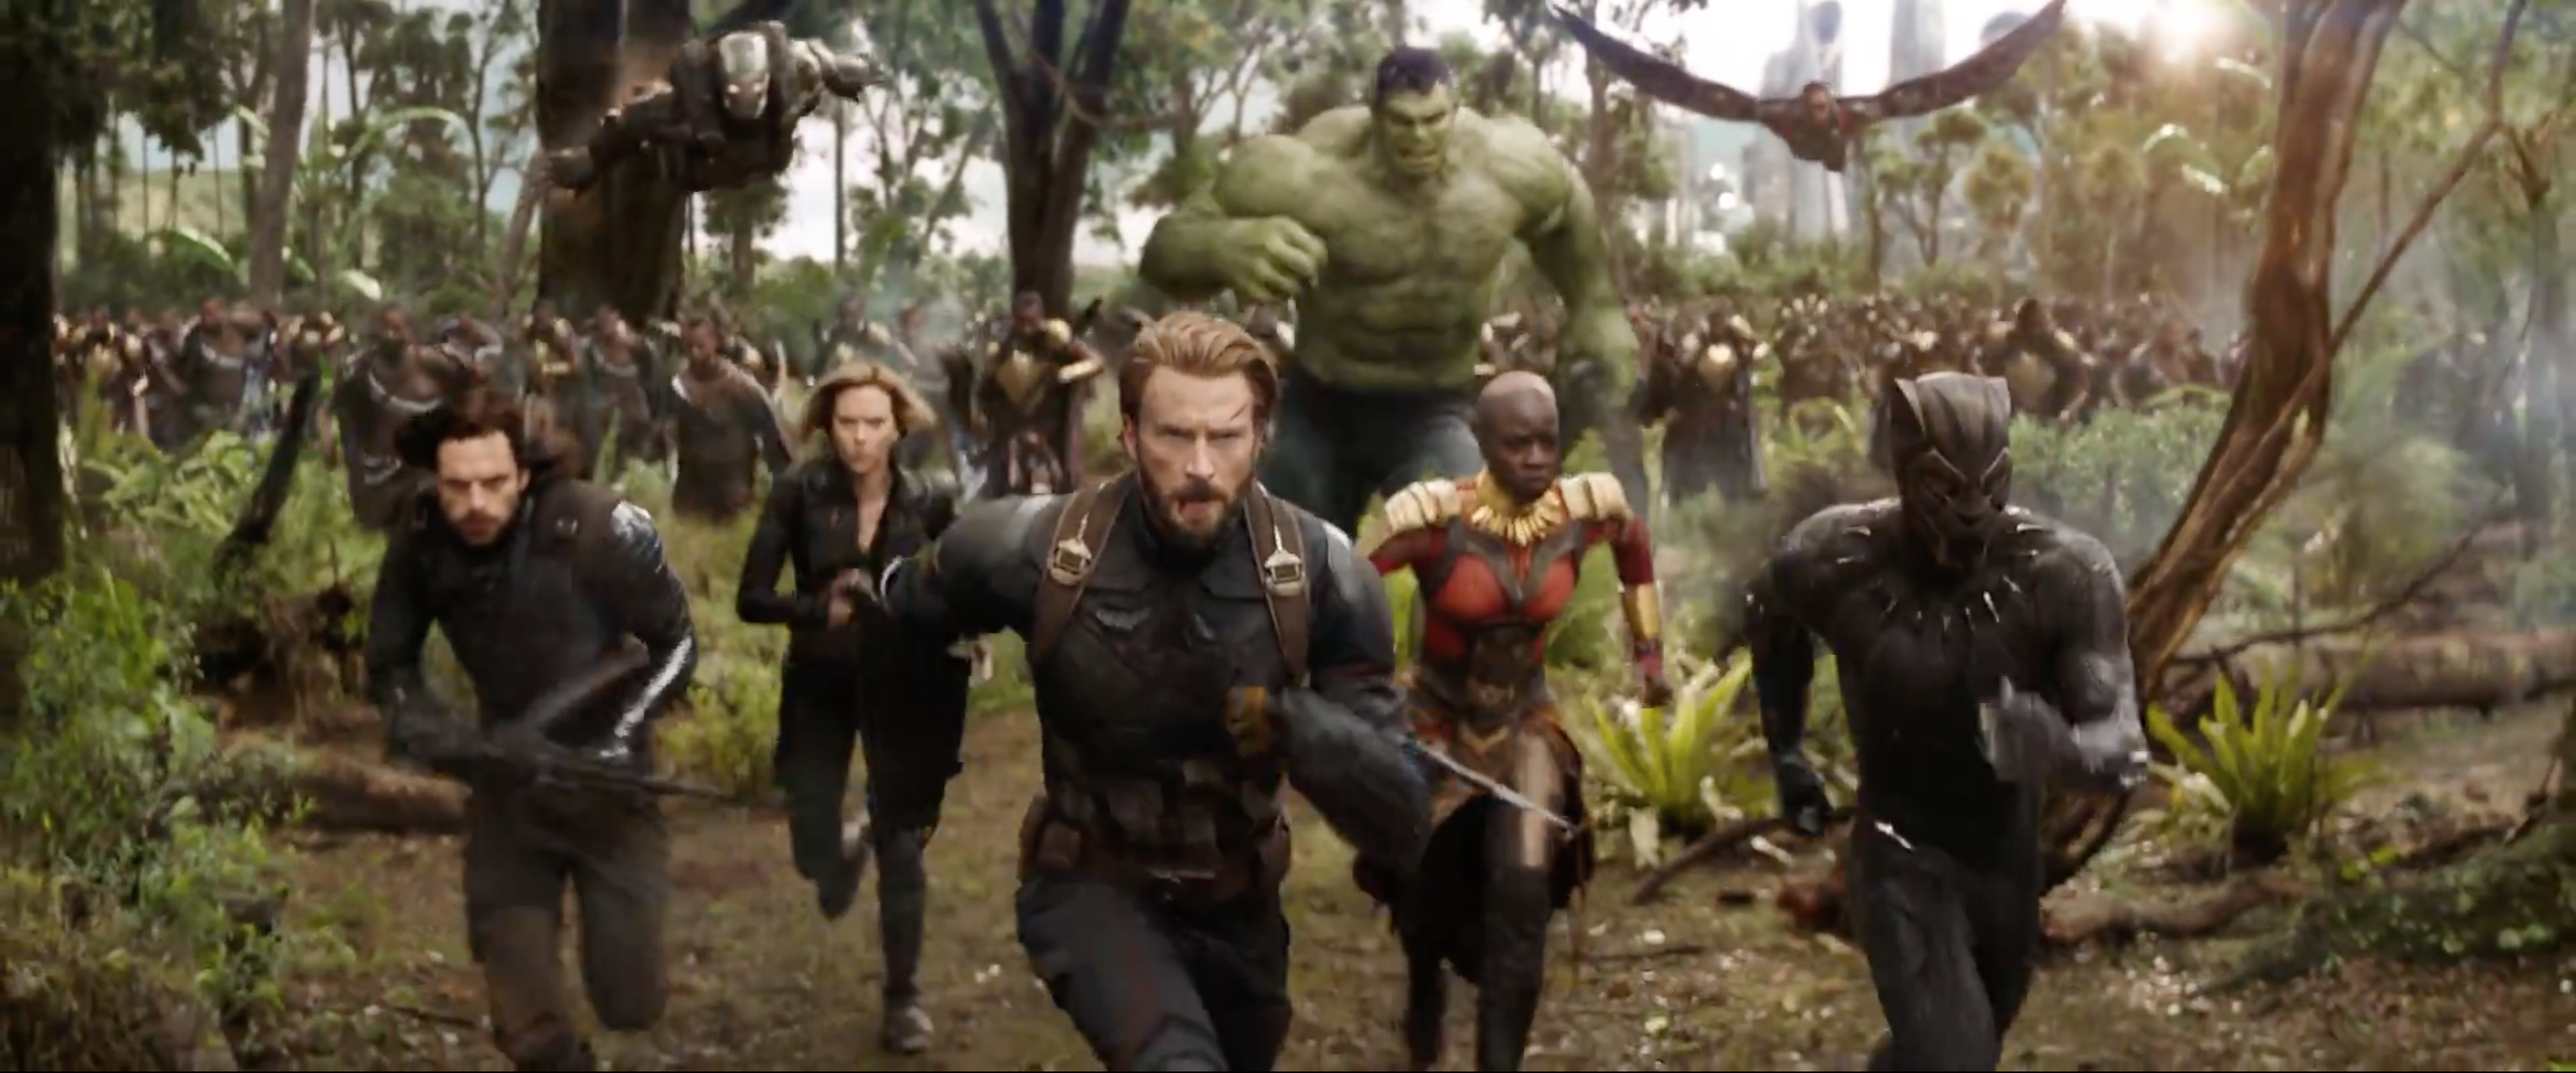 Avengers: Infinity War's Very First Trailer Is Finally Here 1